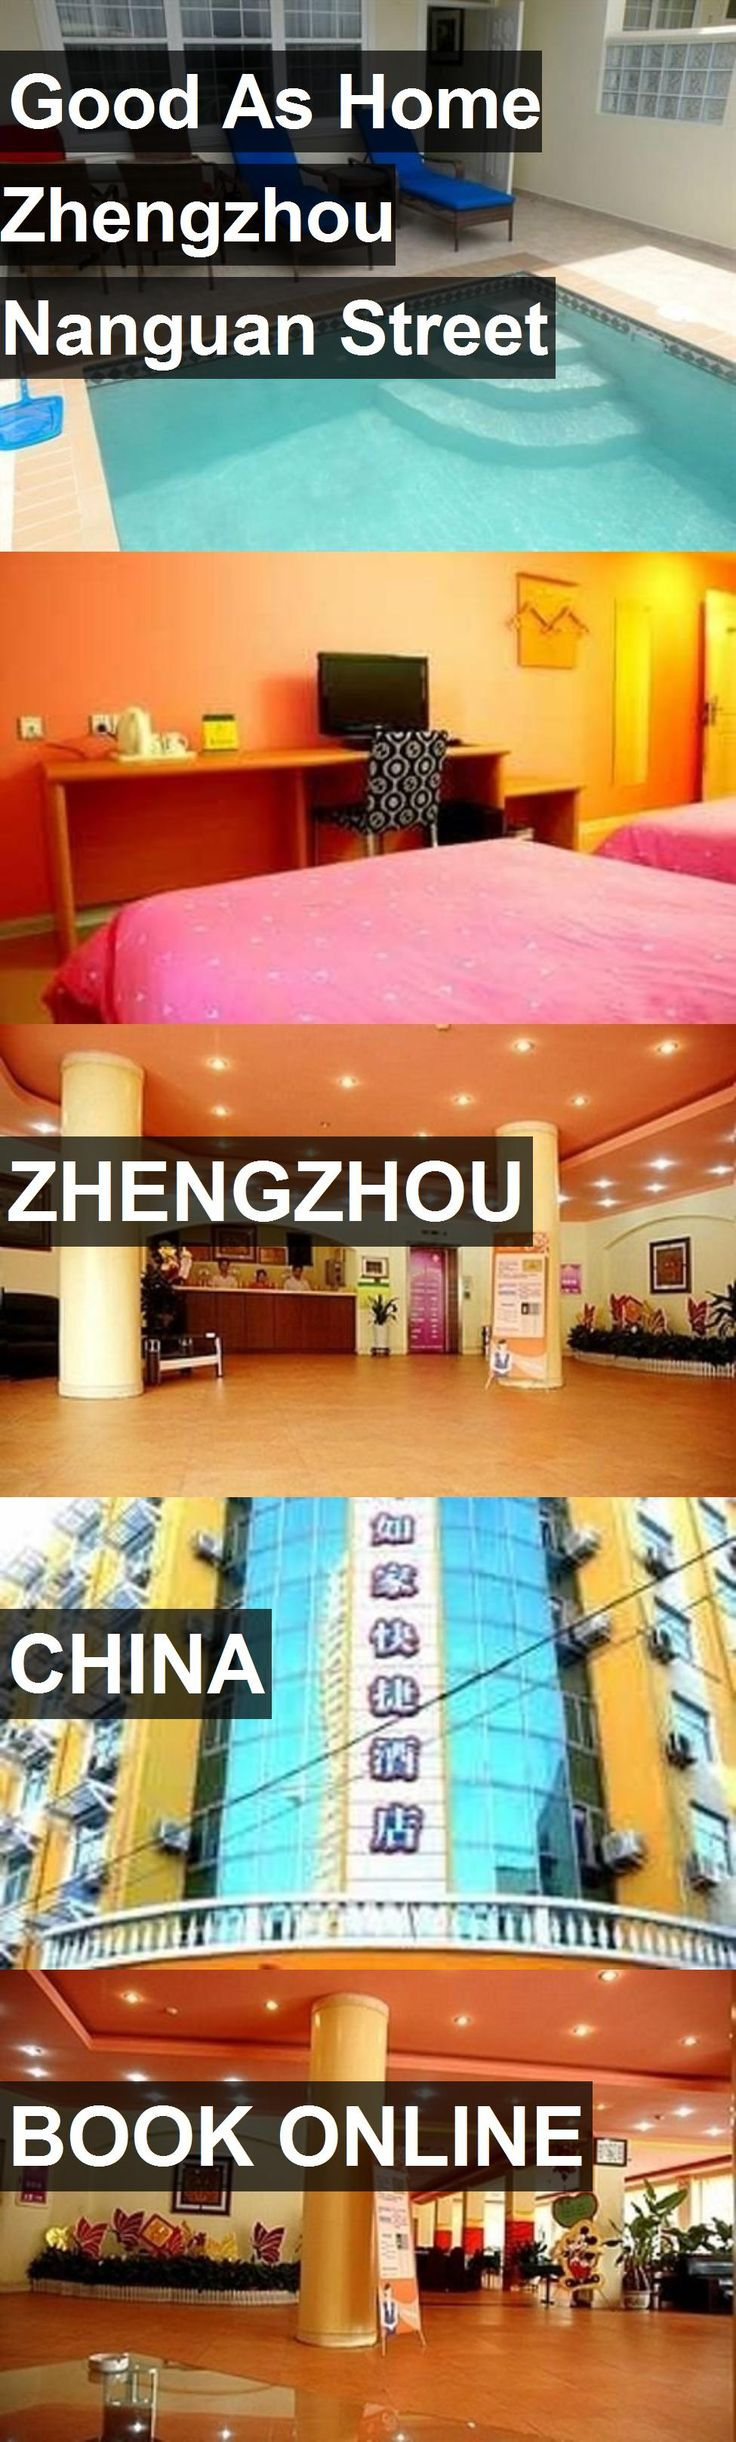 Hotel Good As Home Zhengzhou Nanguan Street in Zhengzhou, China. For more information, photos, reviews and best prices please follow the link. #China #Zhengzhou #travel #vacation #hotel